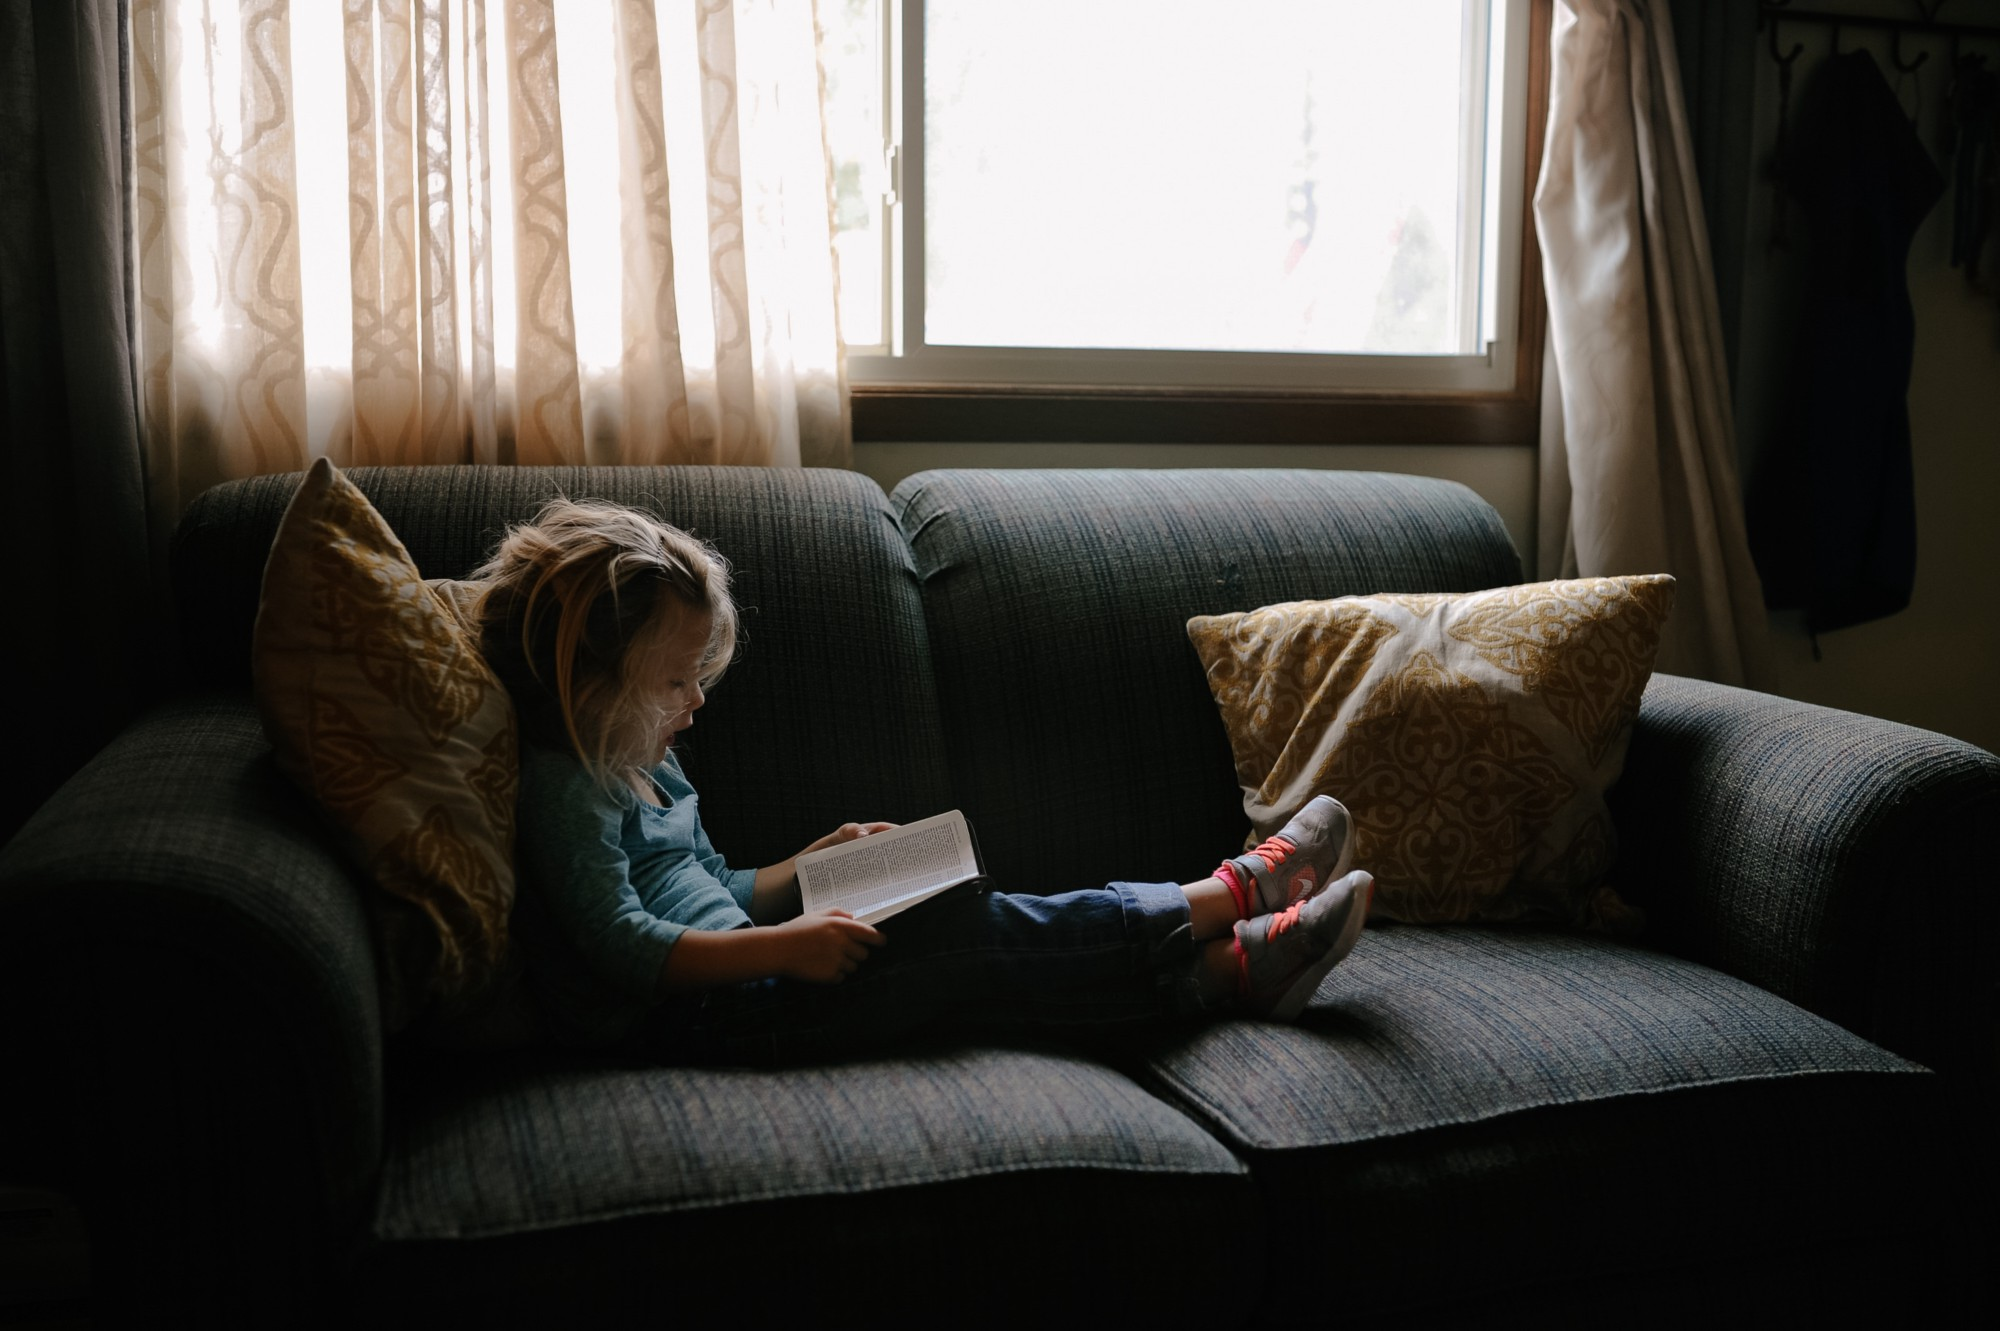 A young child sitting on a couch next to a window, reading a book.